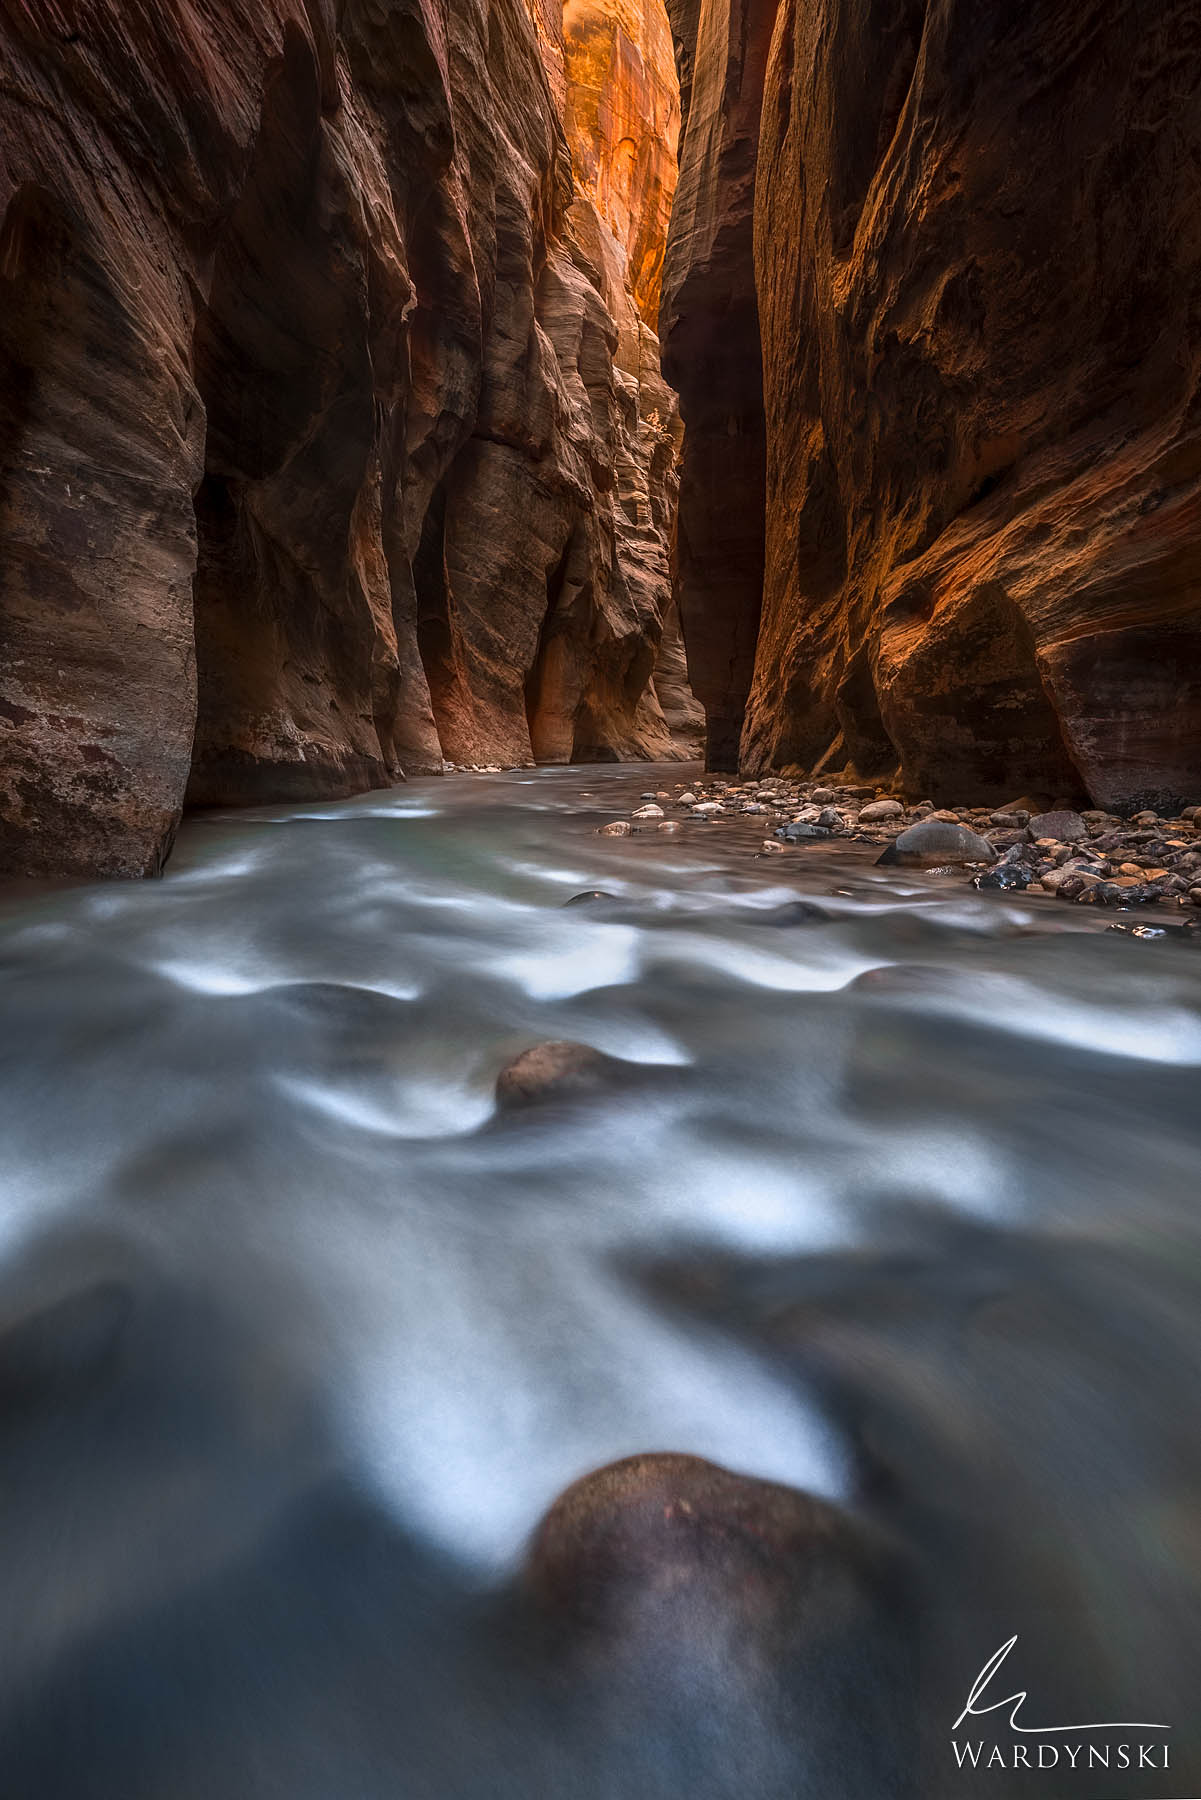 Fine Art Print | Limited Edition of 75 The Virgin River whispers over delicate cascades at Wall Street in Zion National Park...